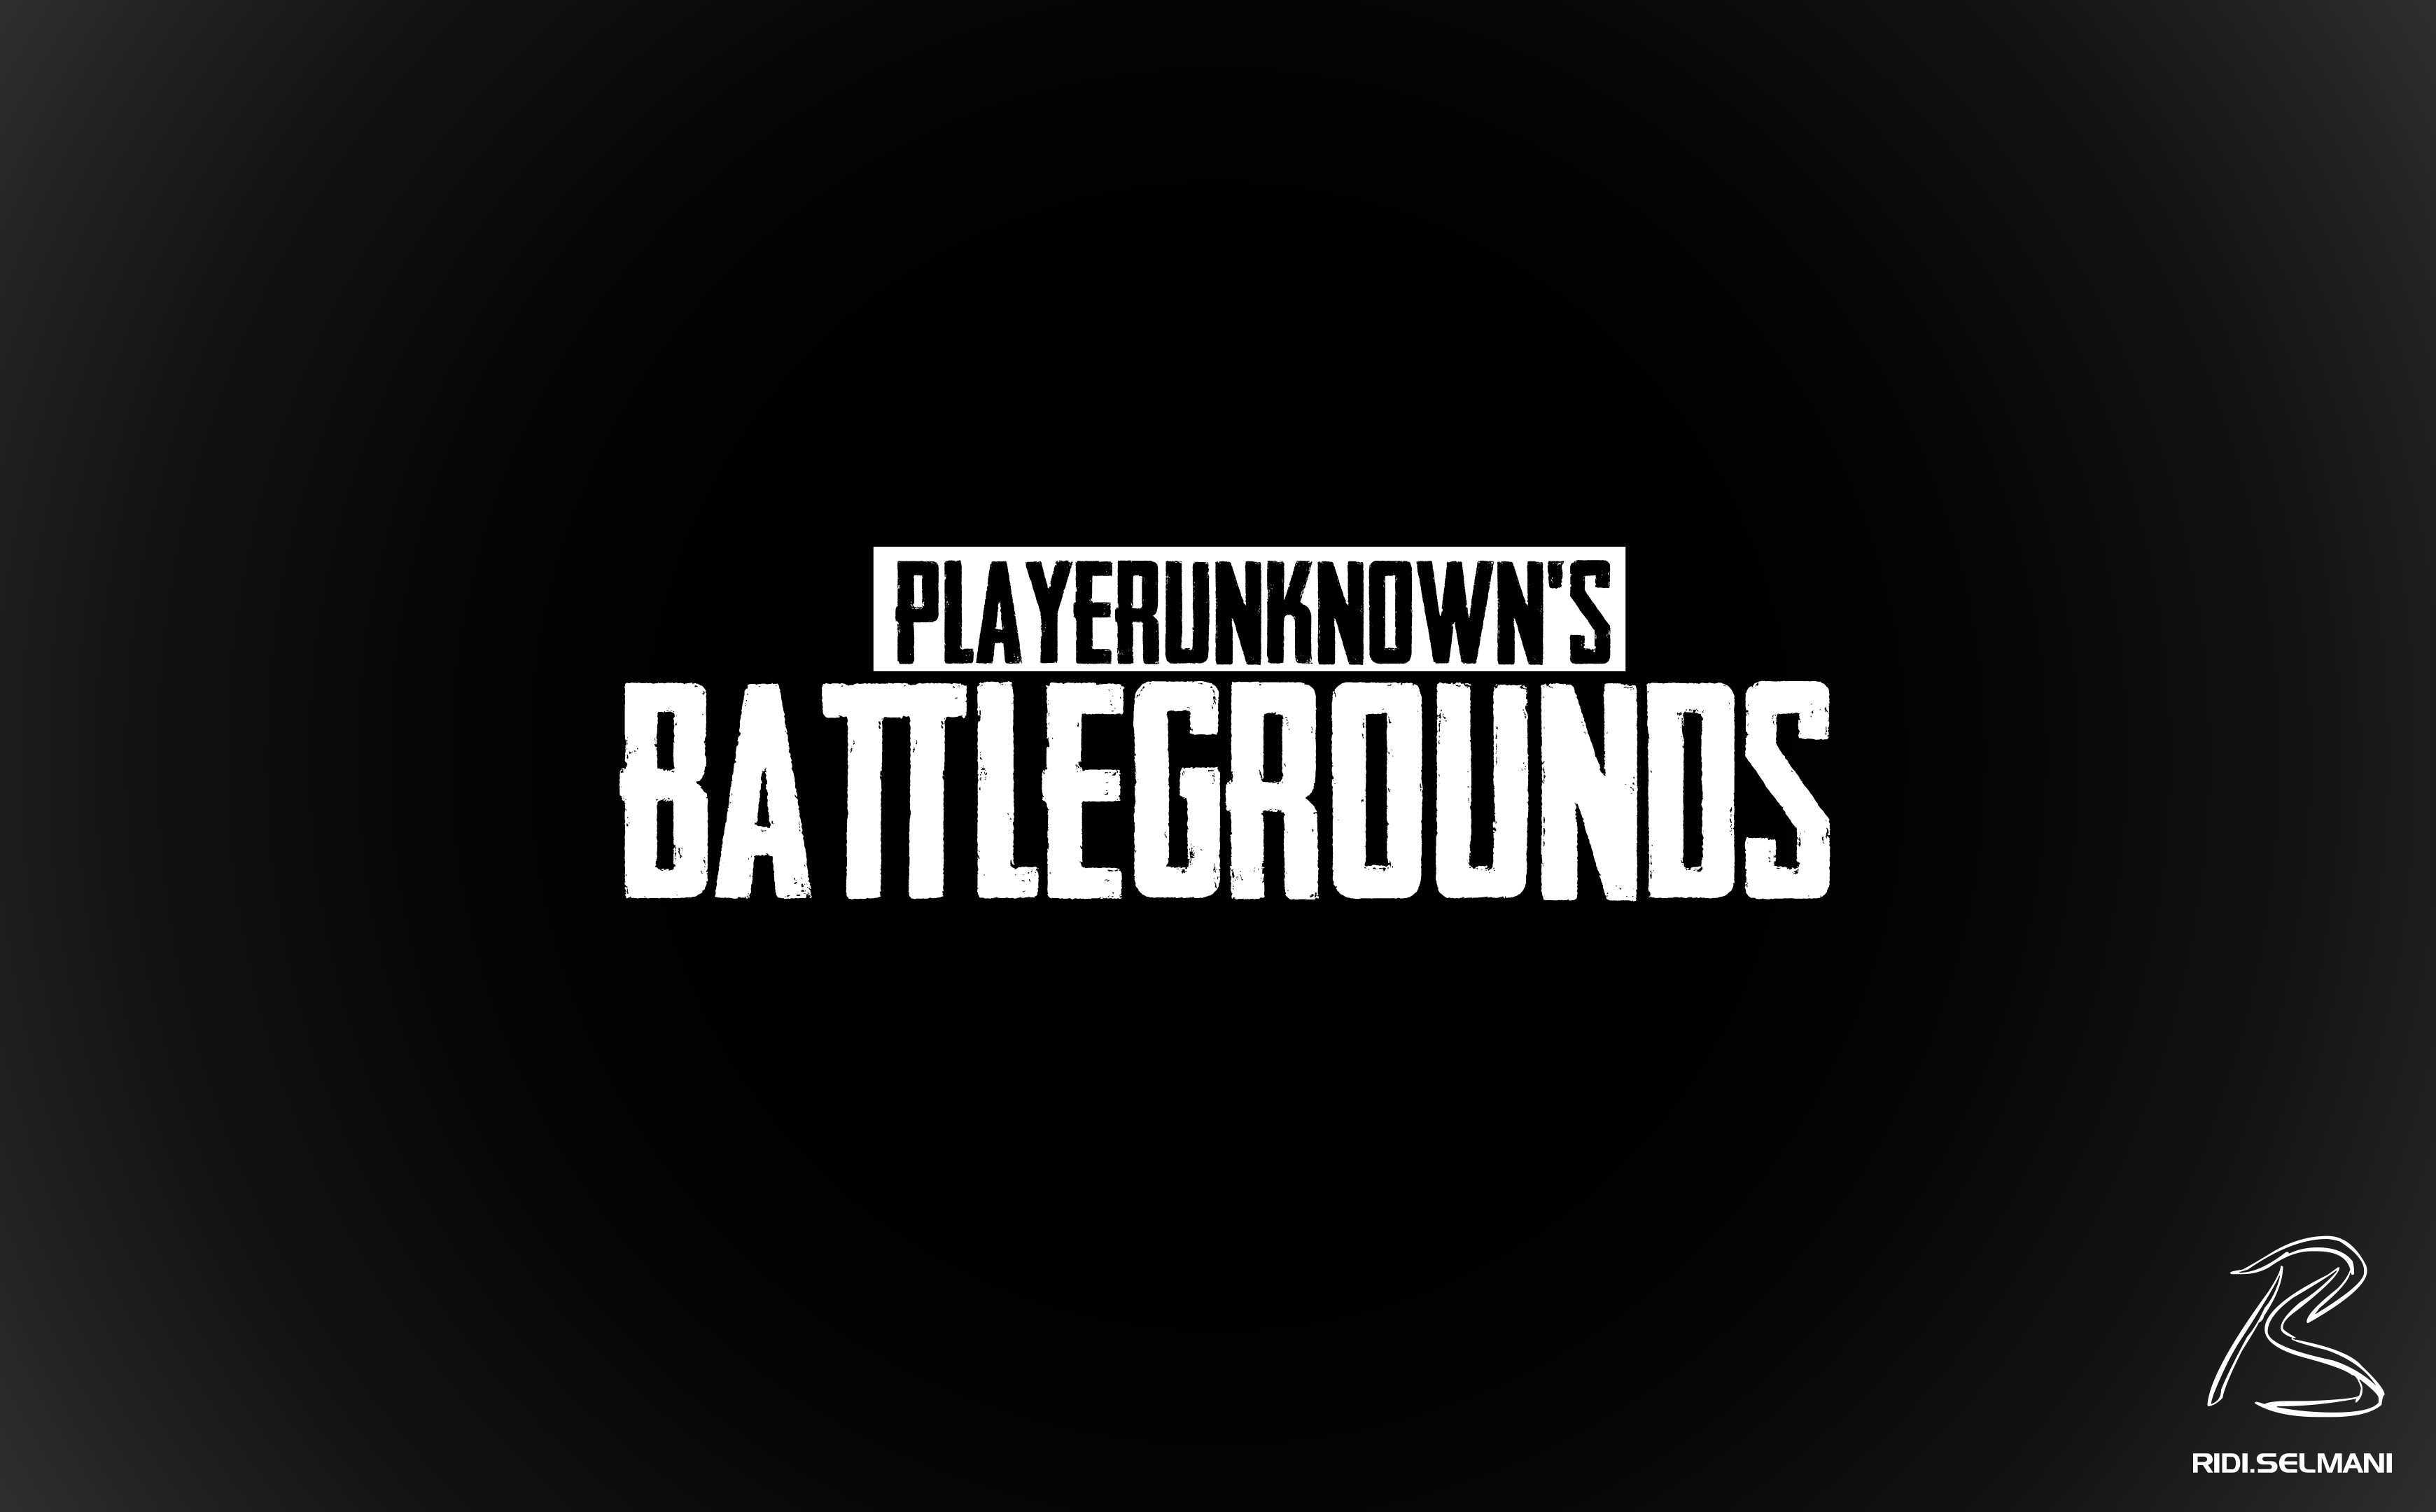 Pubg Wallpaper 4k Black And White: PUBG WALLPAPER HD HD Wallpaper